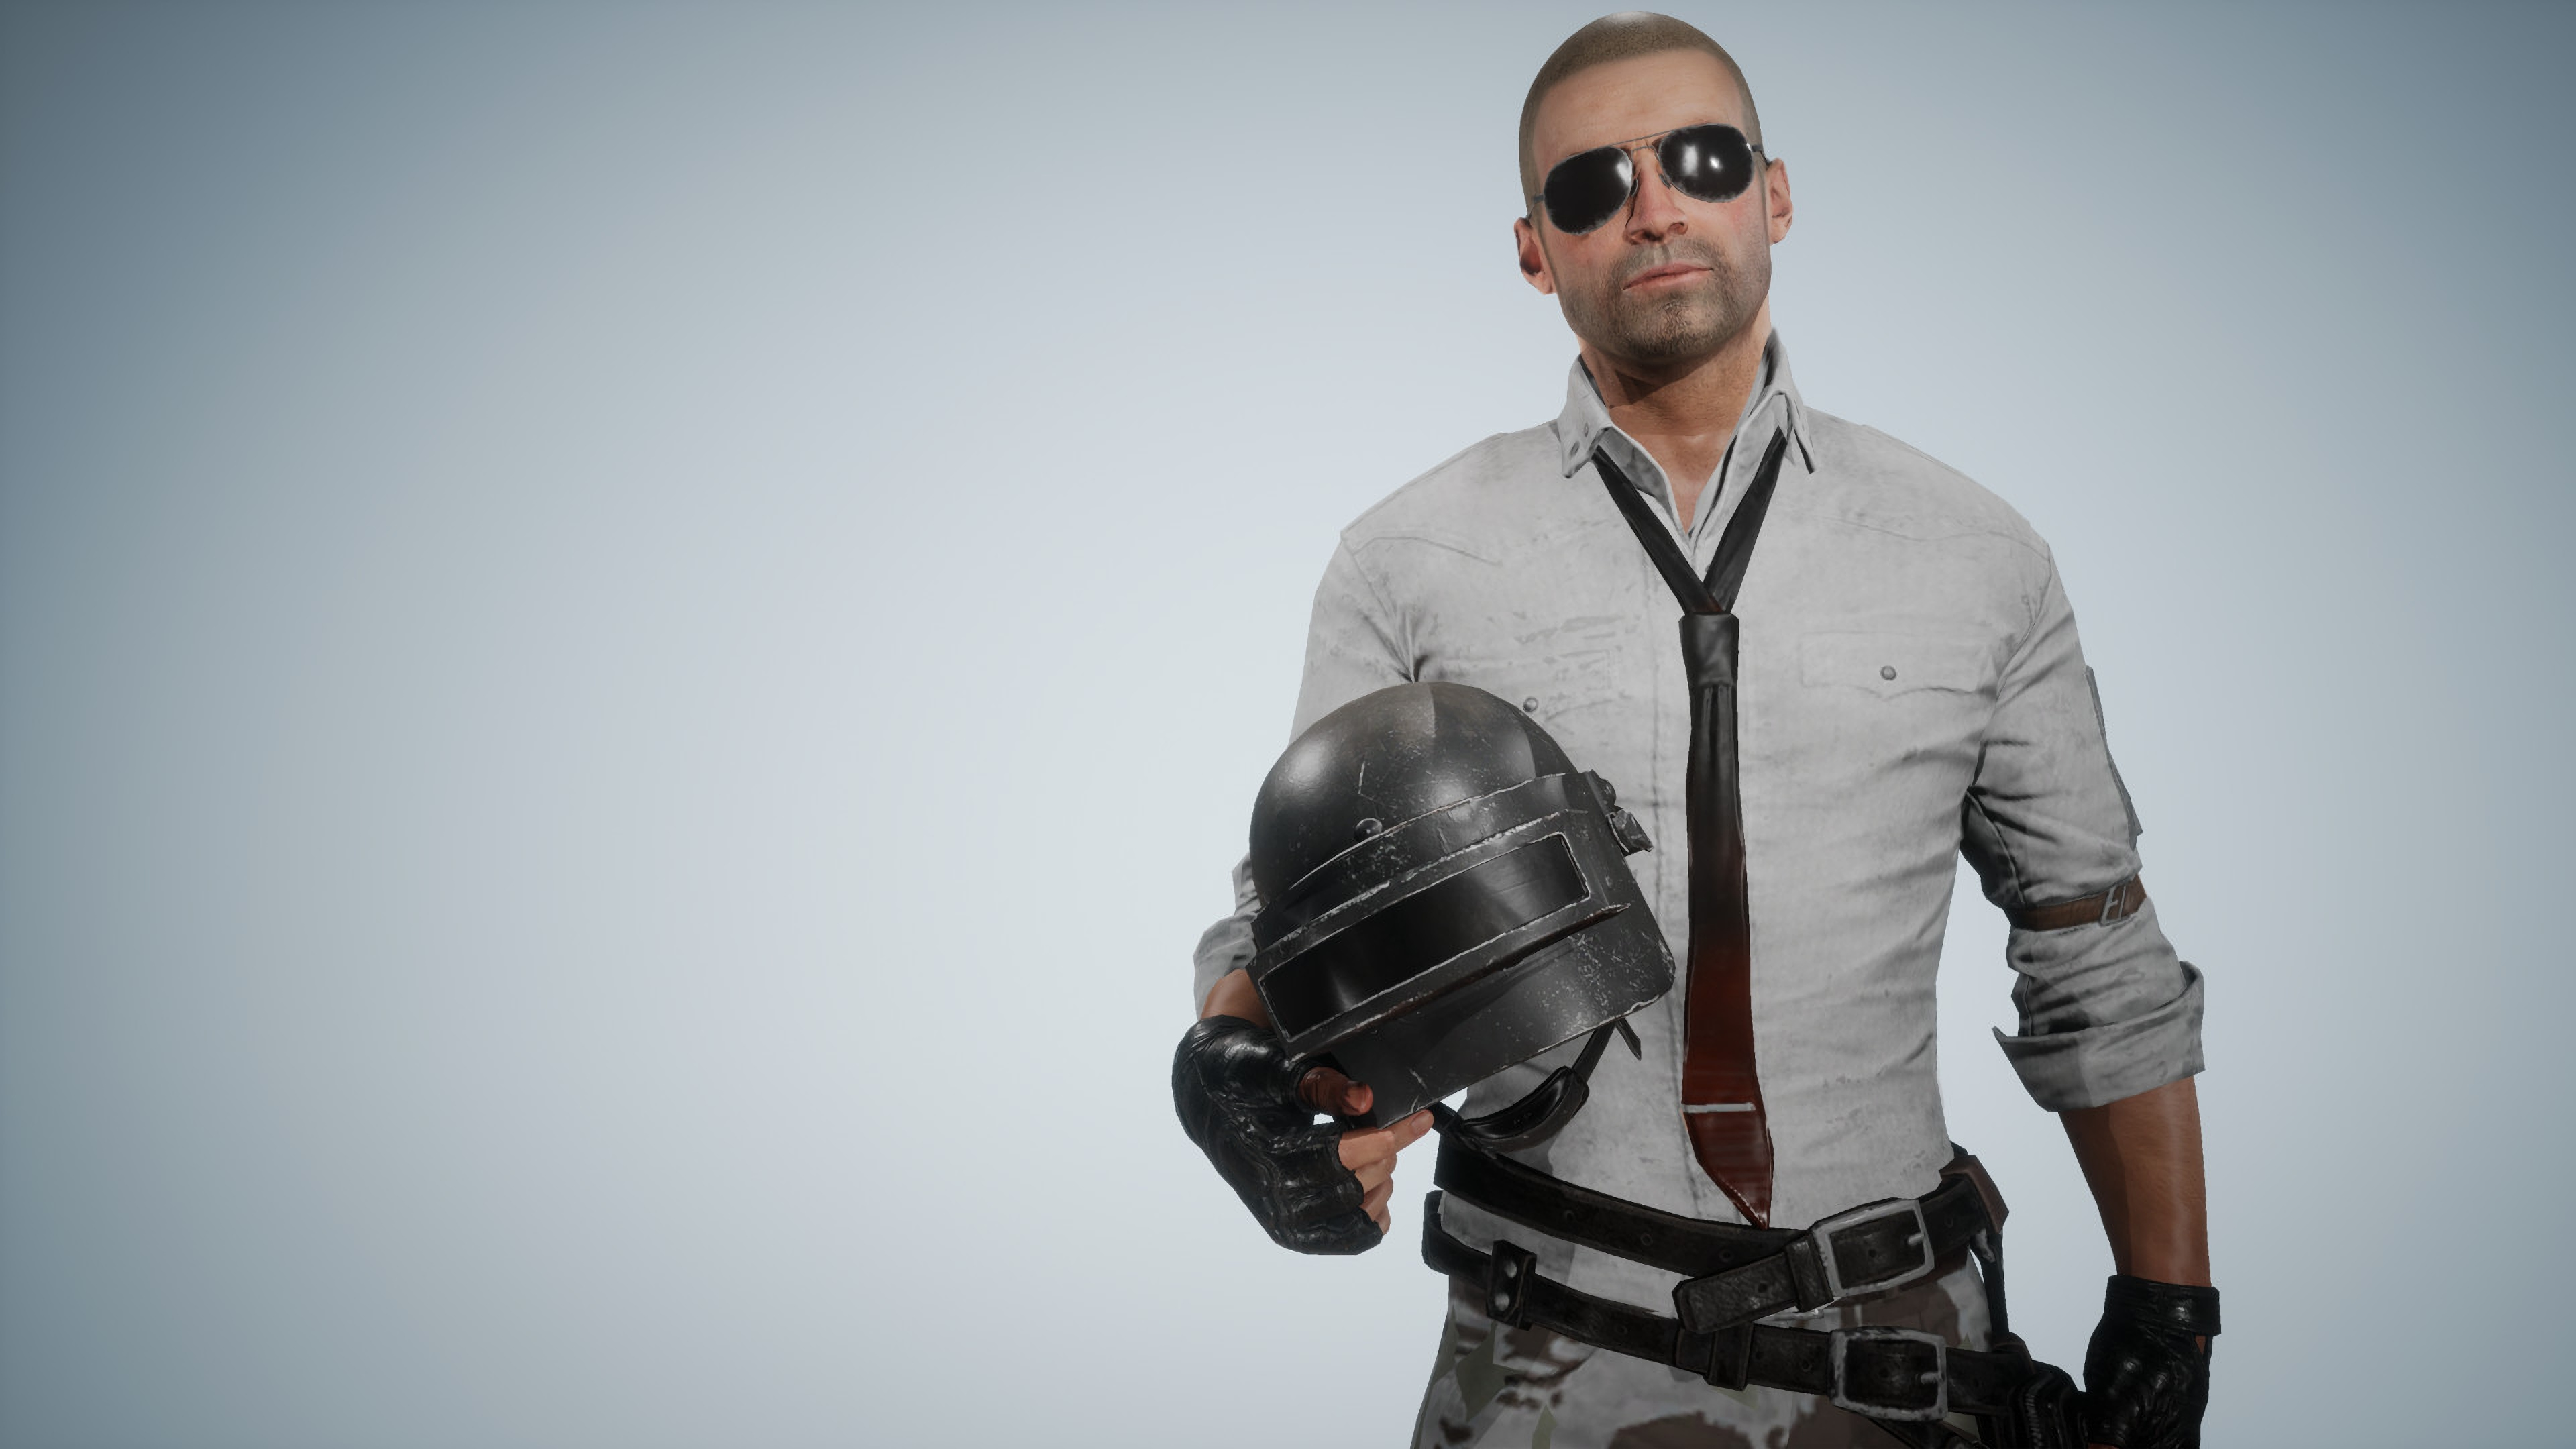 Pubg Helmet Guy Without Helmet HD Games 4k Wallpapers Images Backgrounds Photos And Pictures